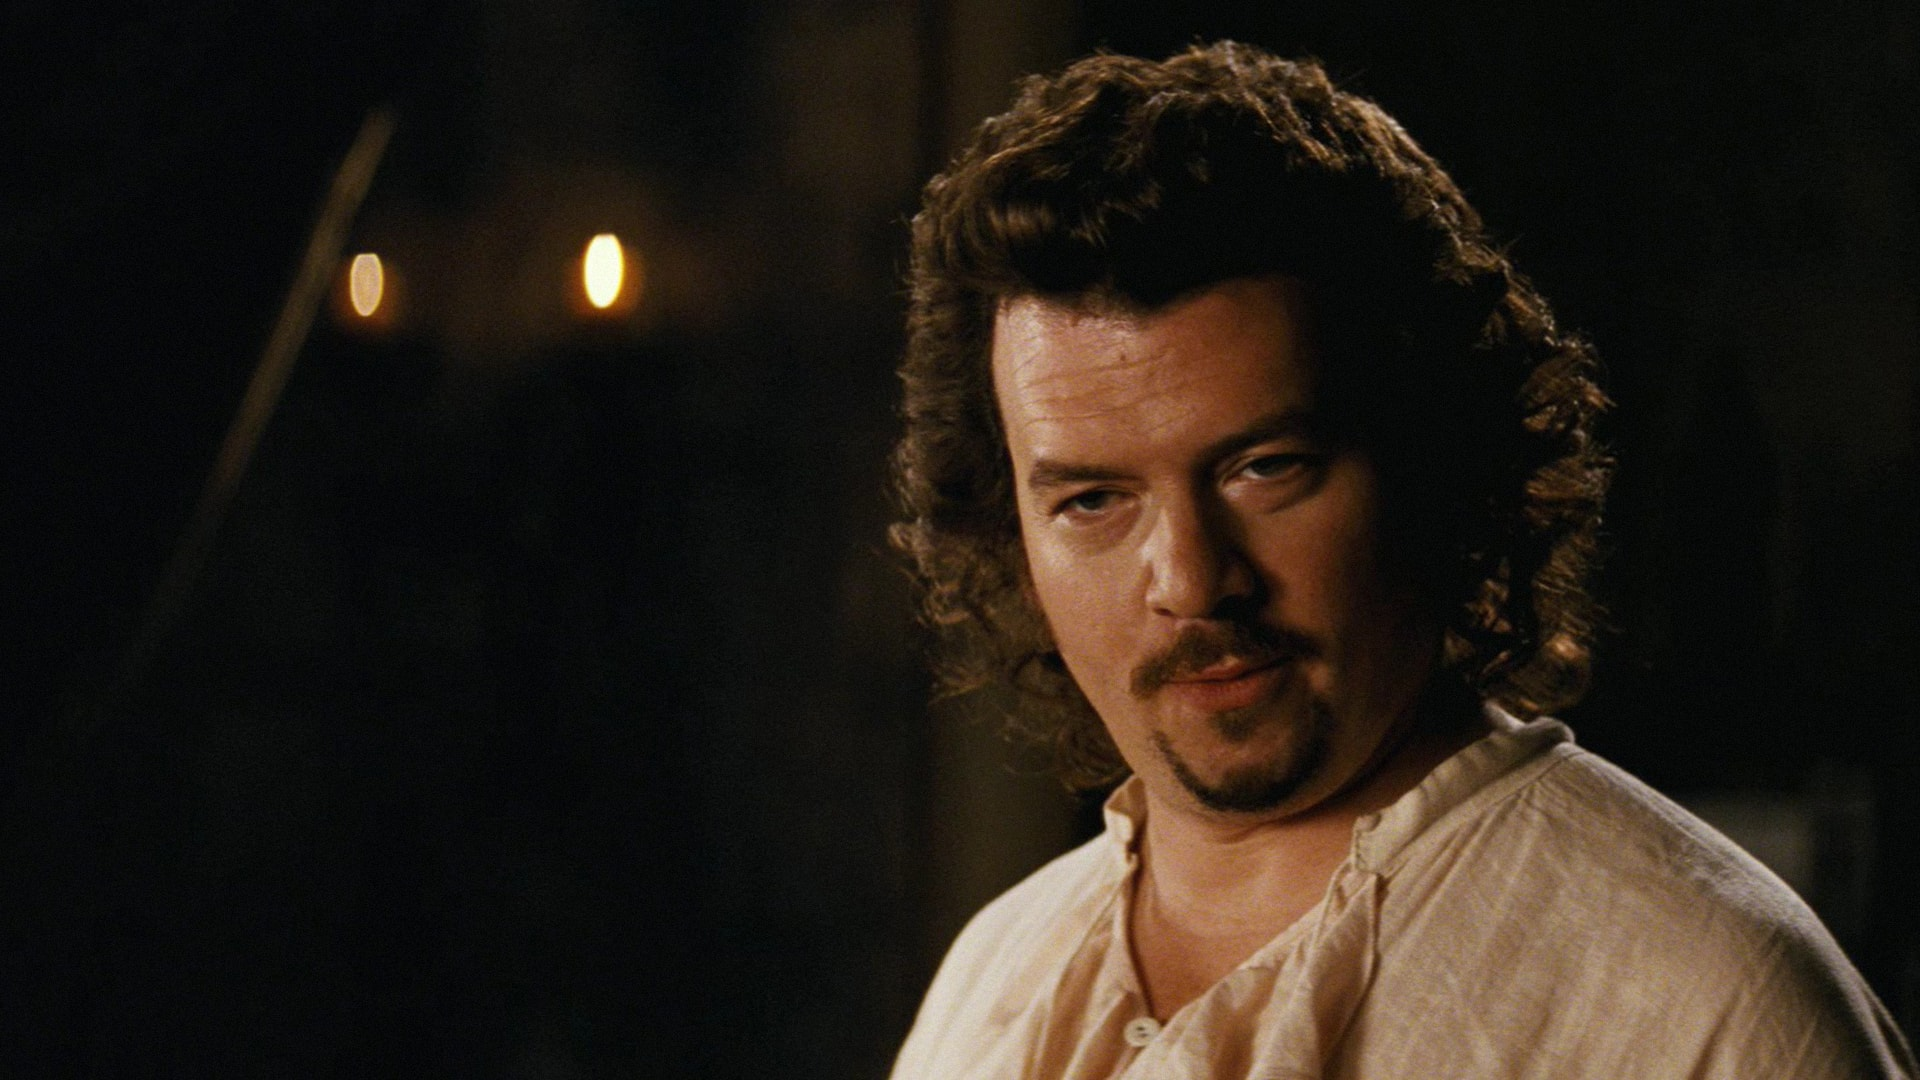 Danny Mcbride Desktop wallpaper